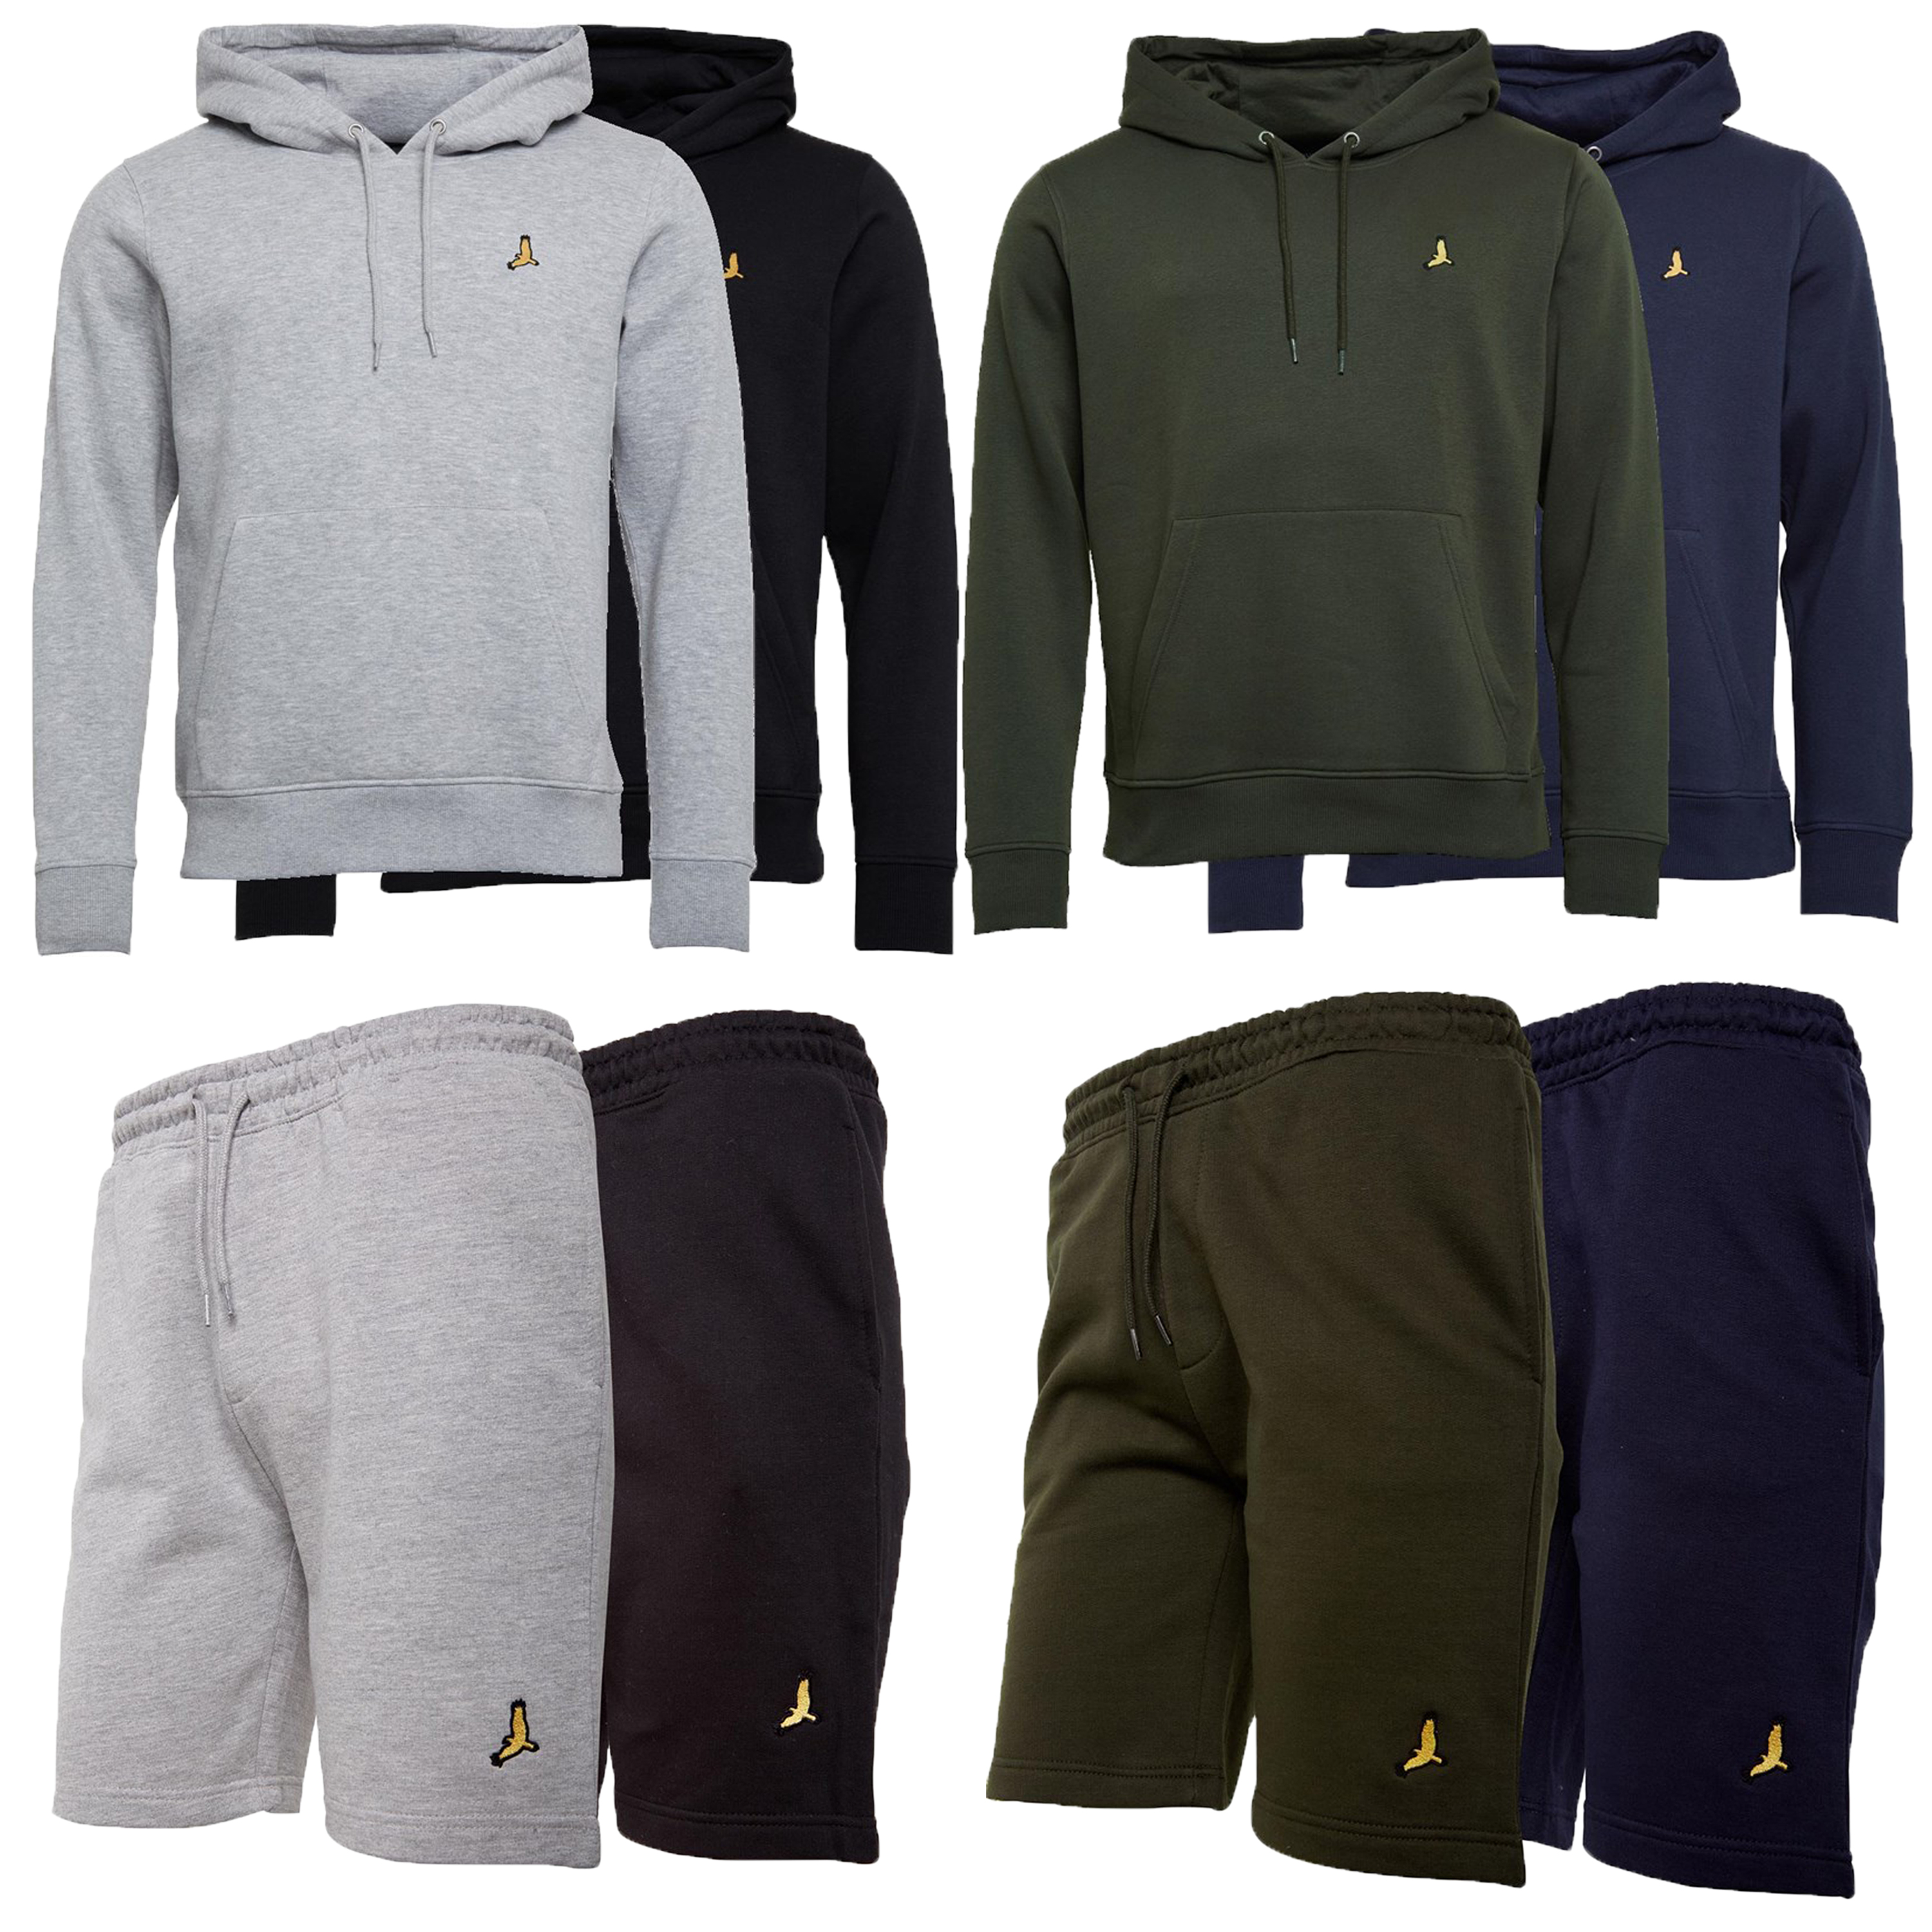 Mens-Brave-Soul-2-Pack-Over-The-Head-Hoodie-Shorts-Brushed-Back-Fleece-Fashion thumbnail 4